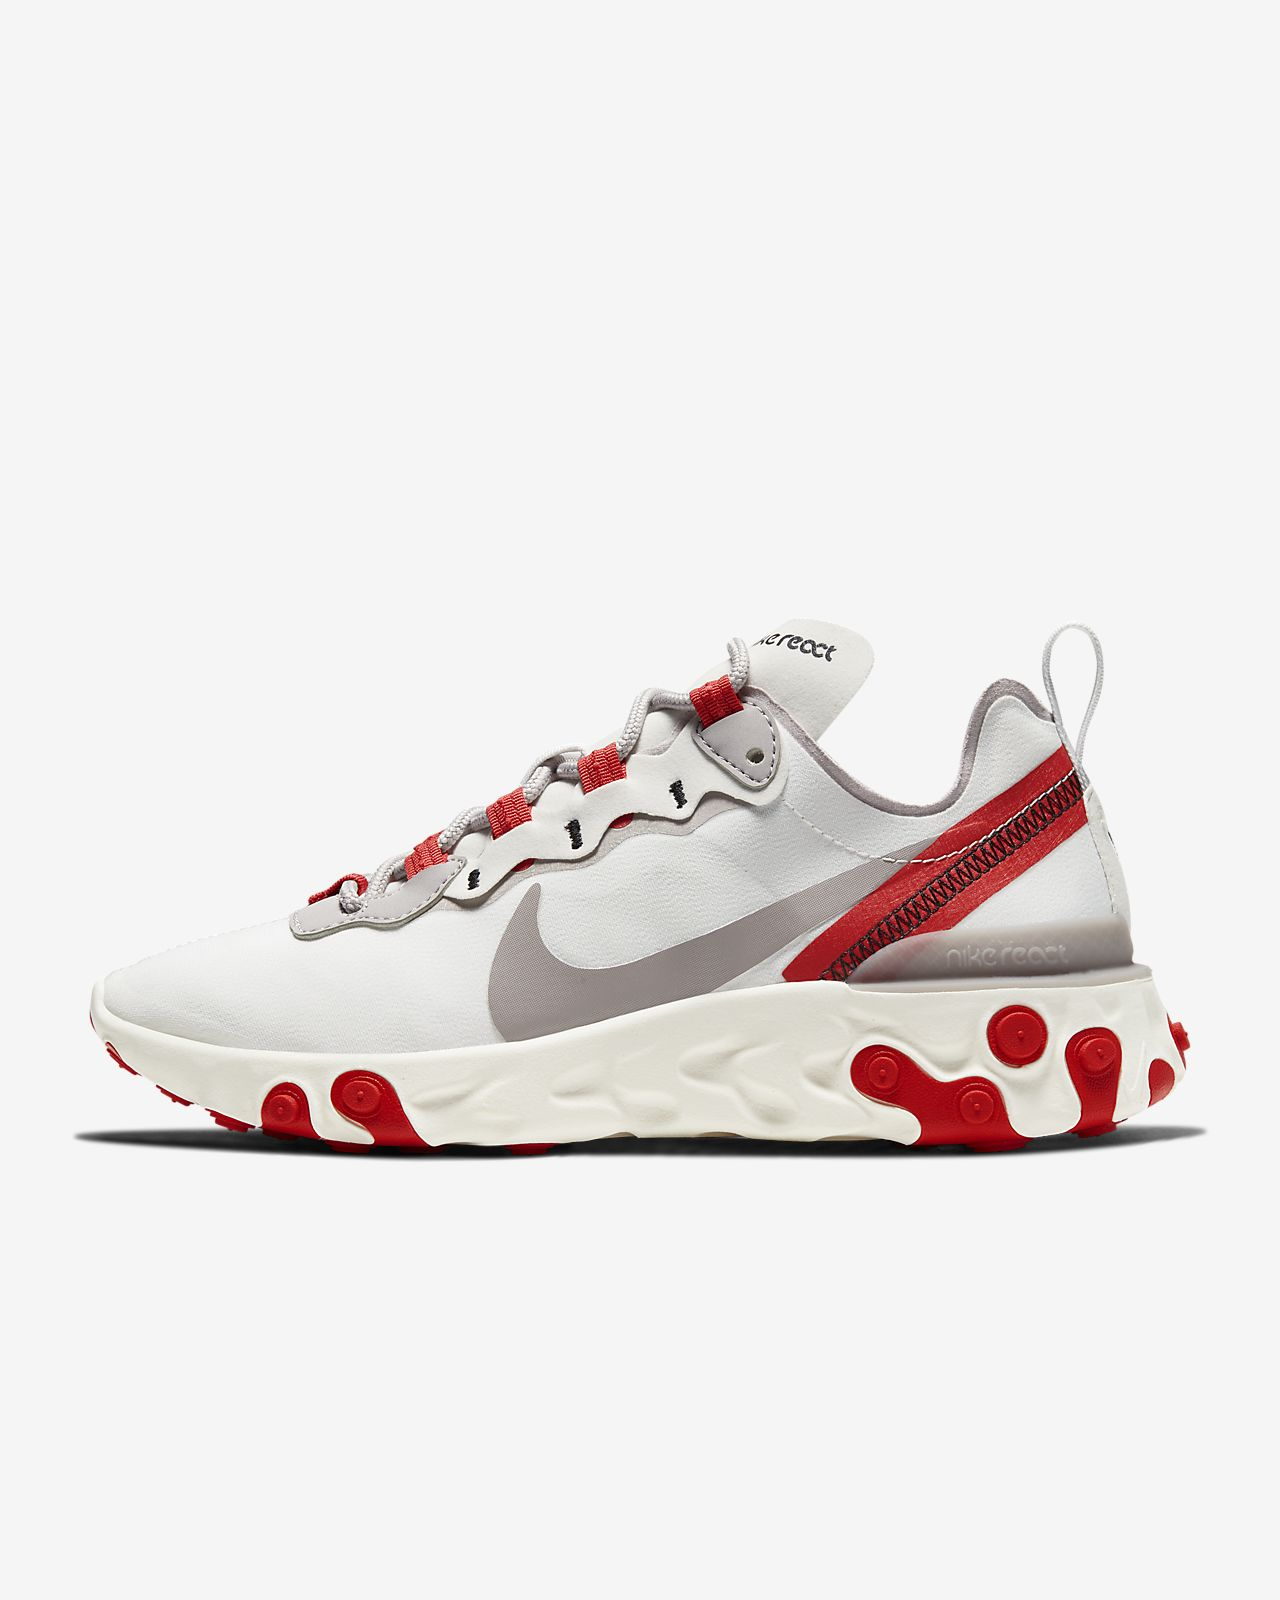 Buy Shoe Bags from Nike in Malaysia March 2020